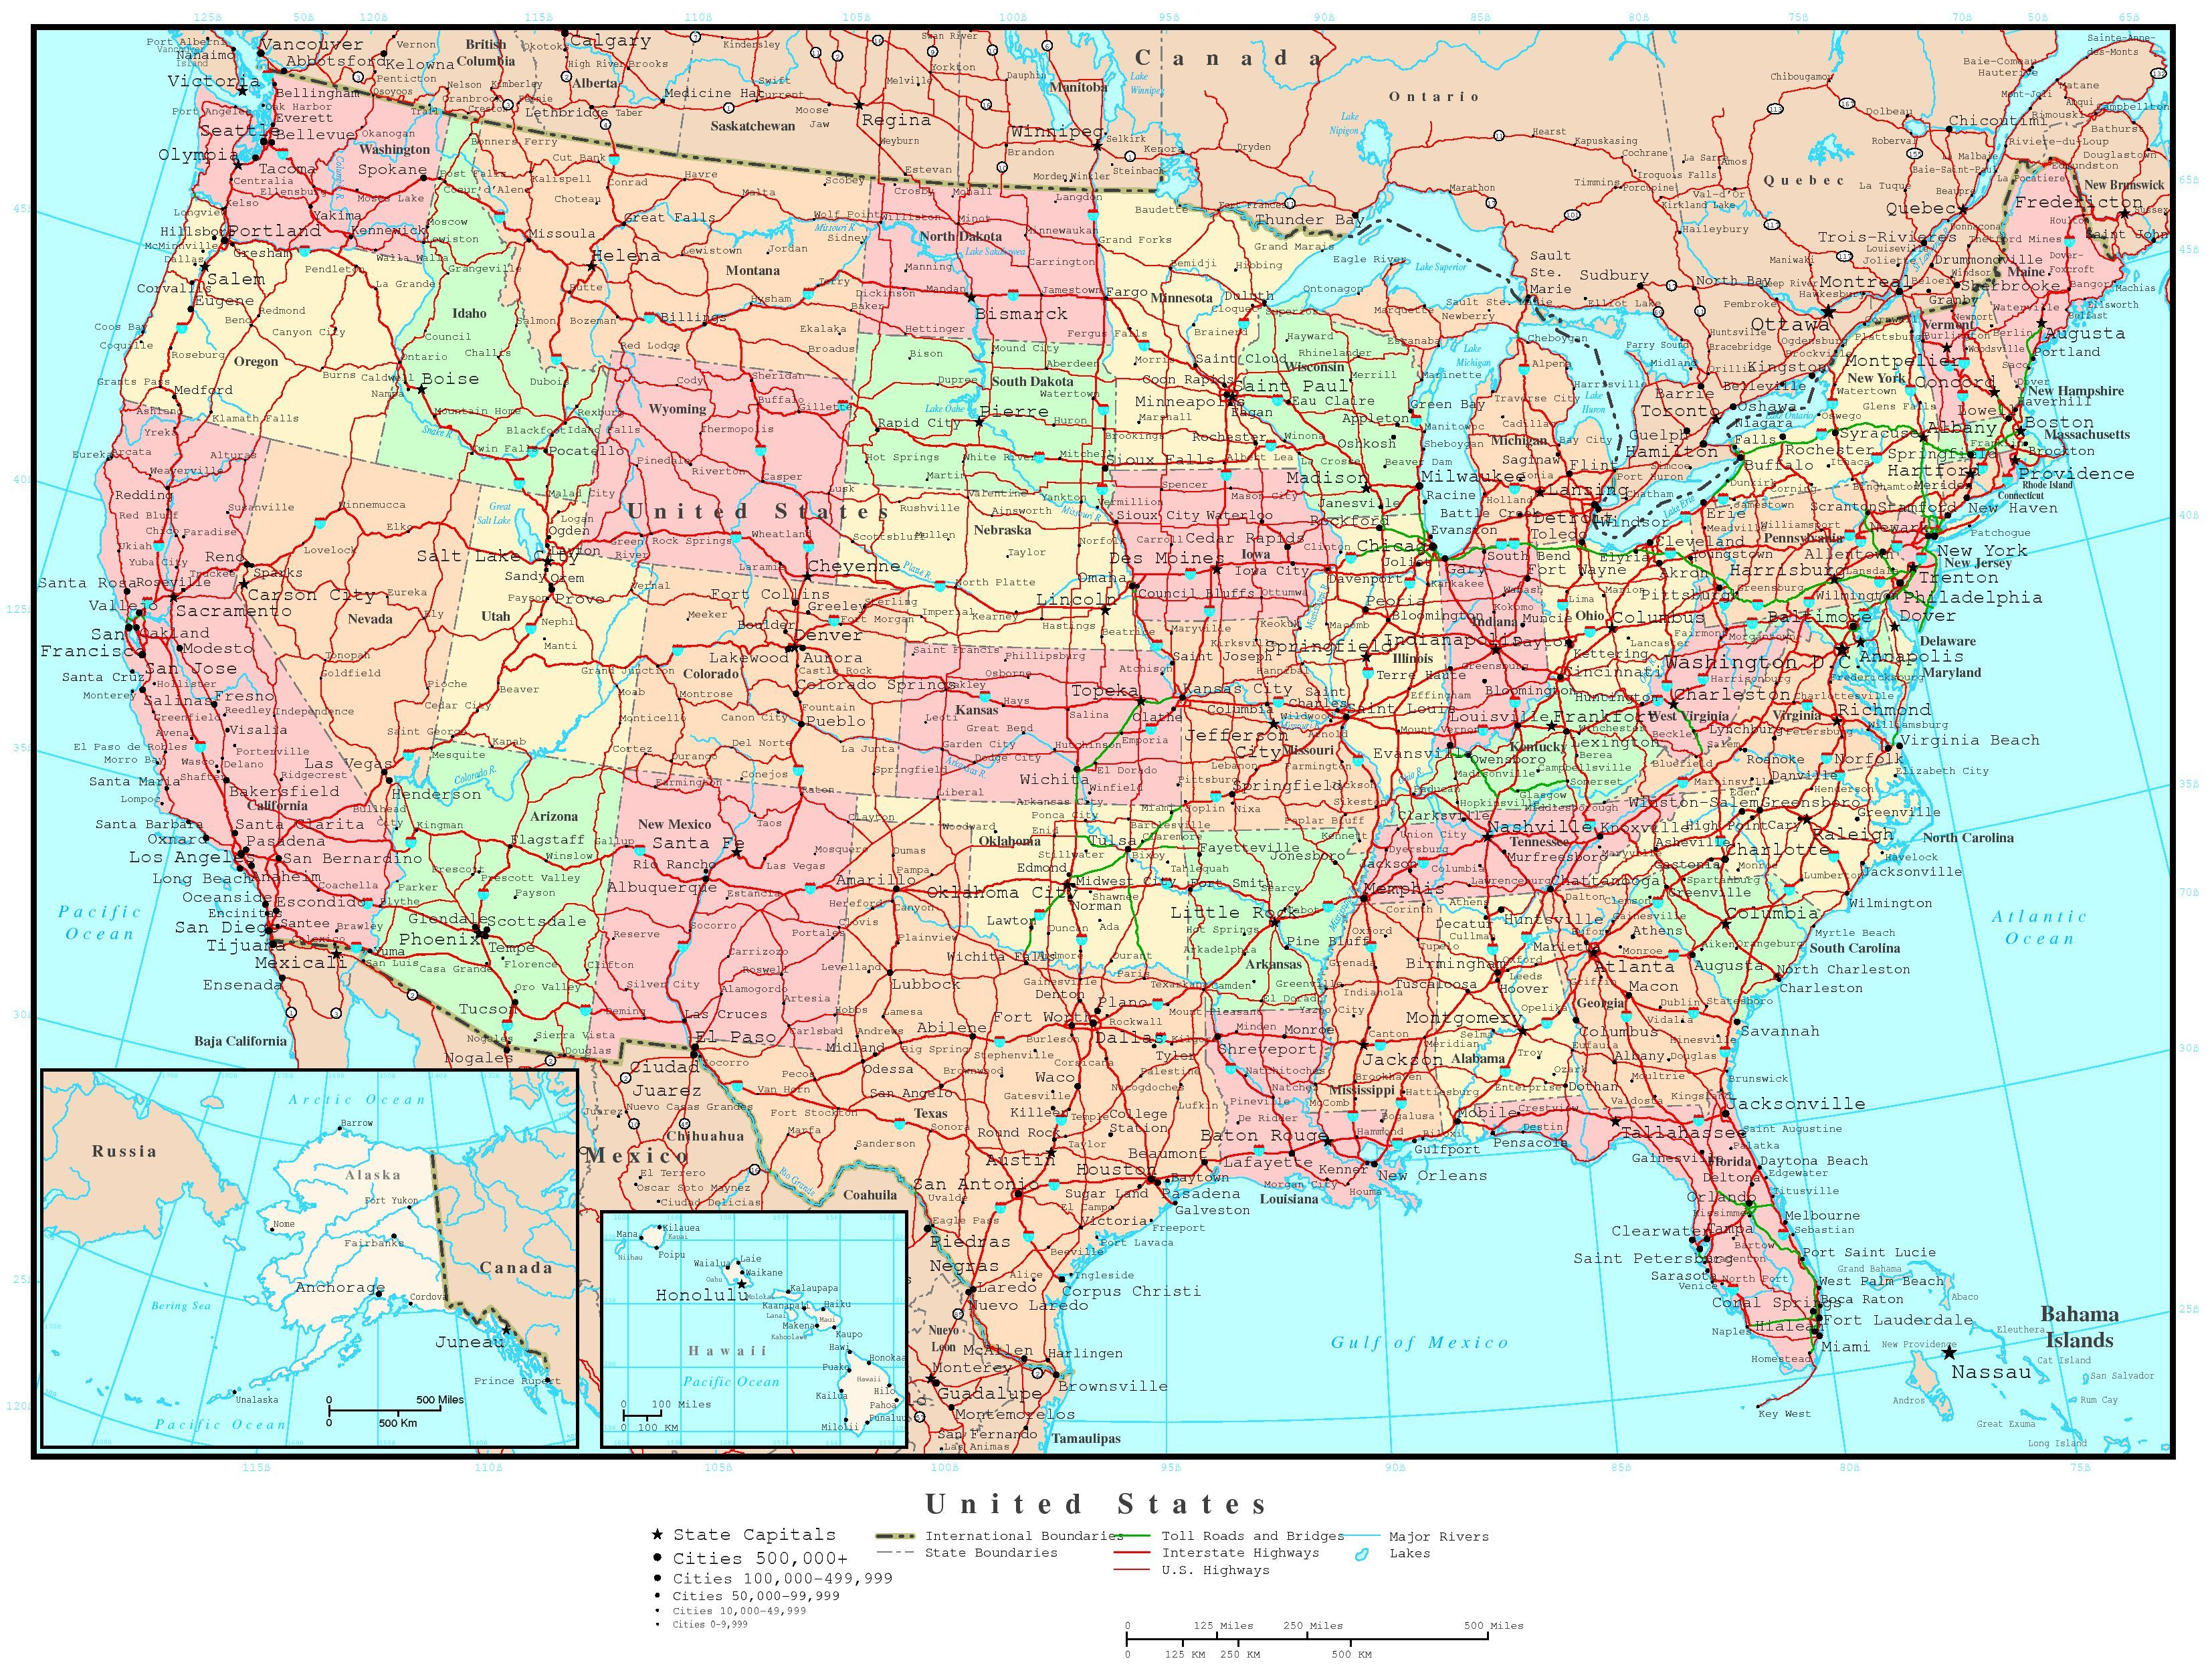 Reference Map Showing Major Highways And Cities And Roads Of - Us map showing states